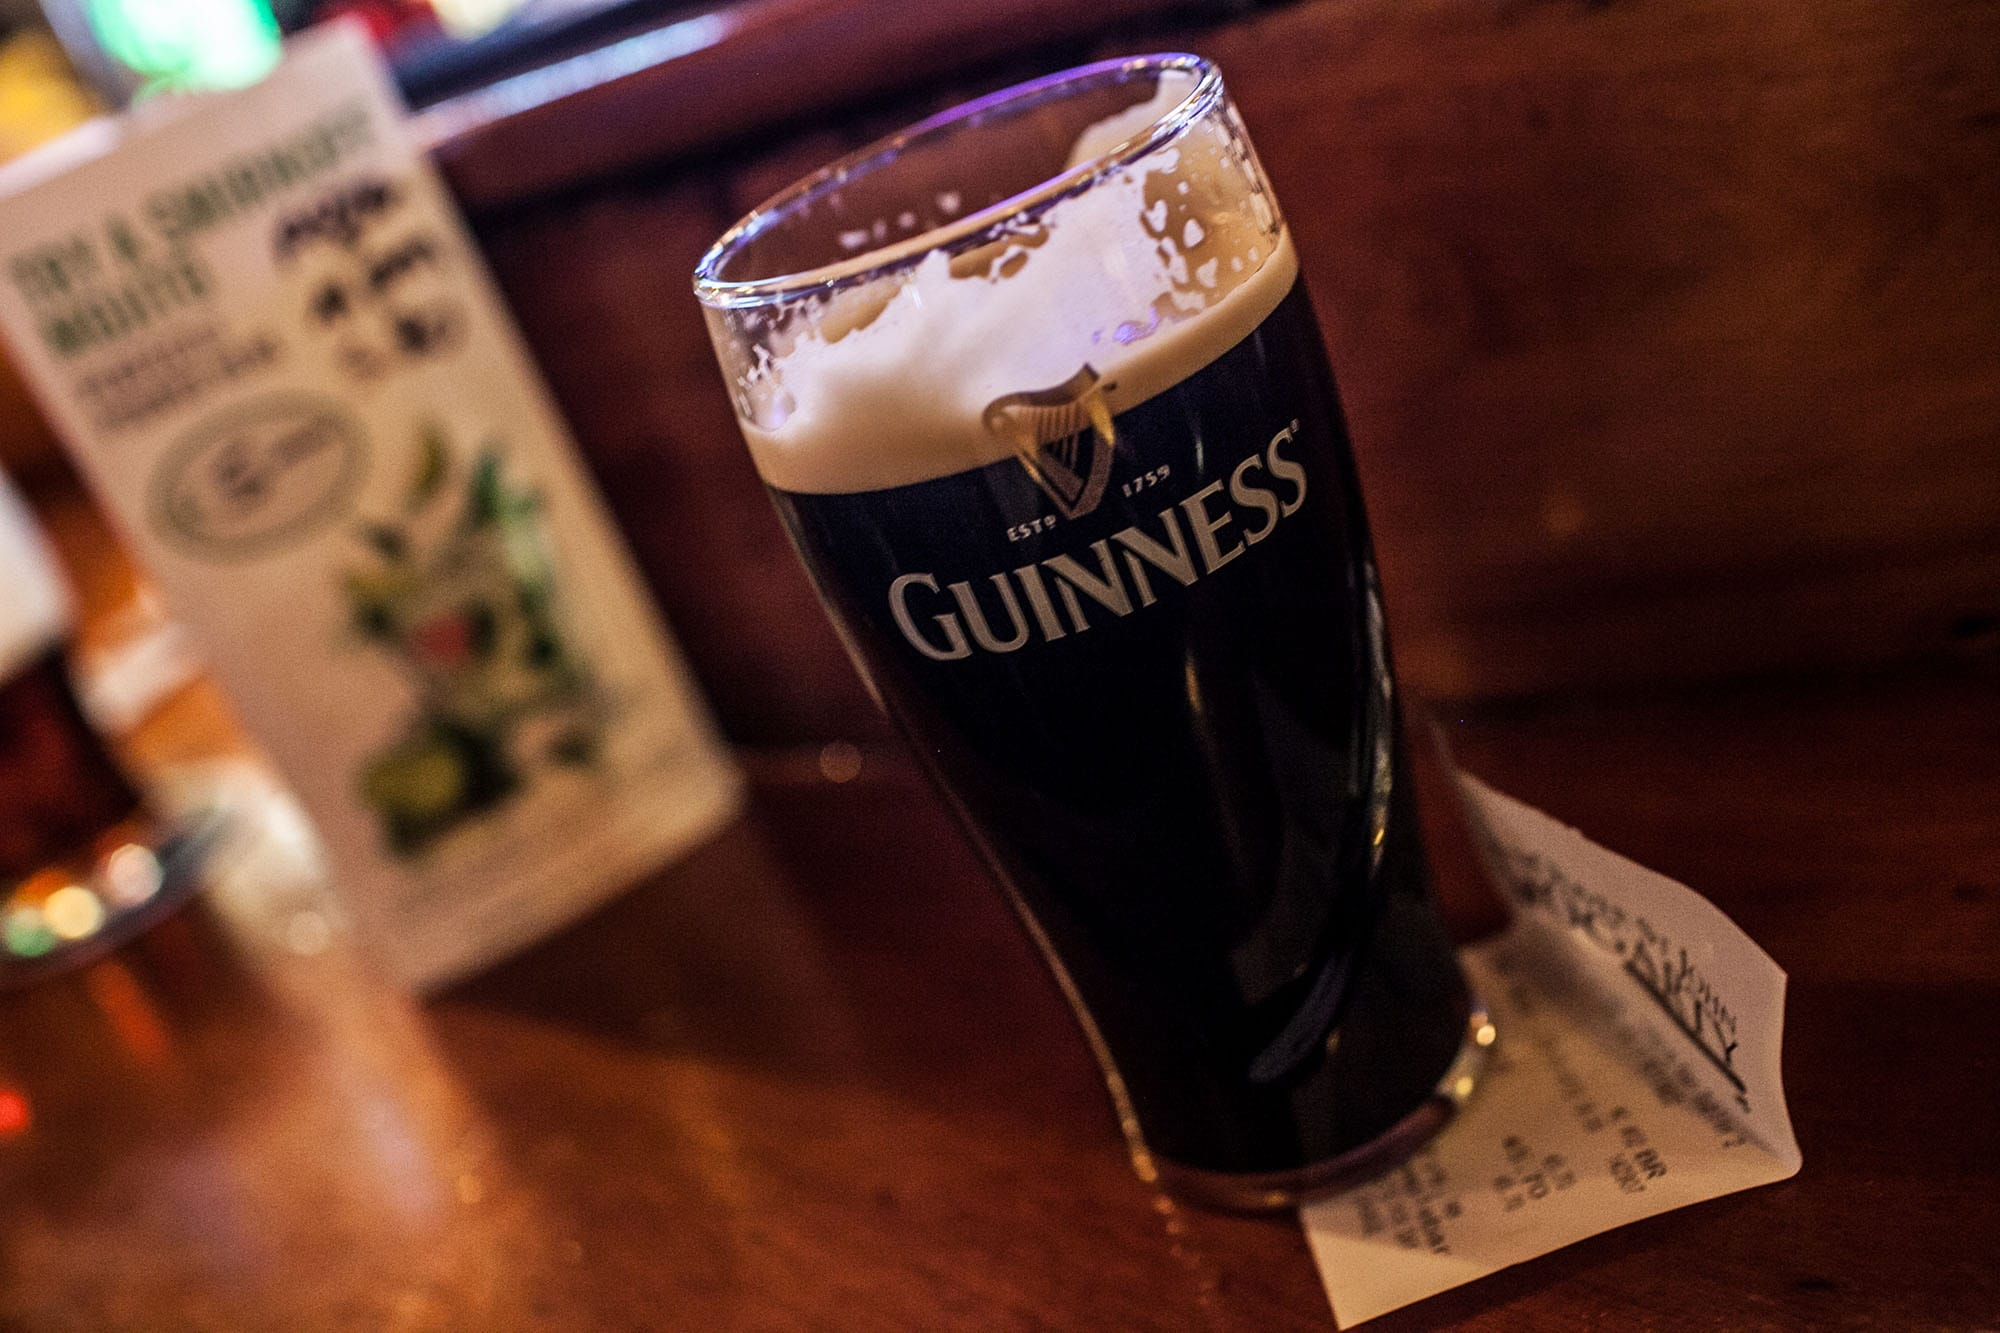 Pint of Guinness at a pub in Dublin, Ireland